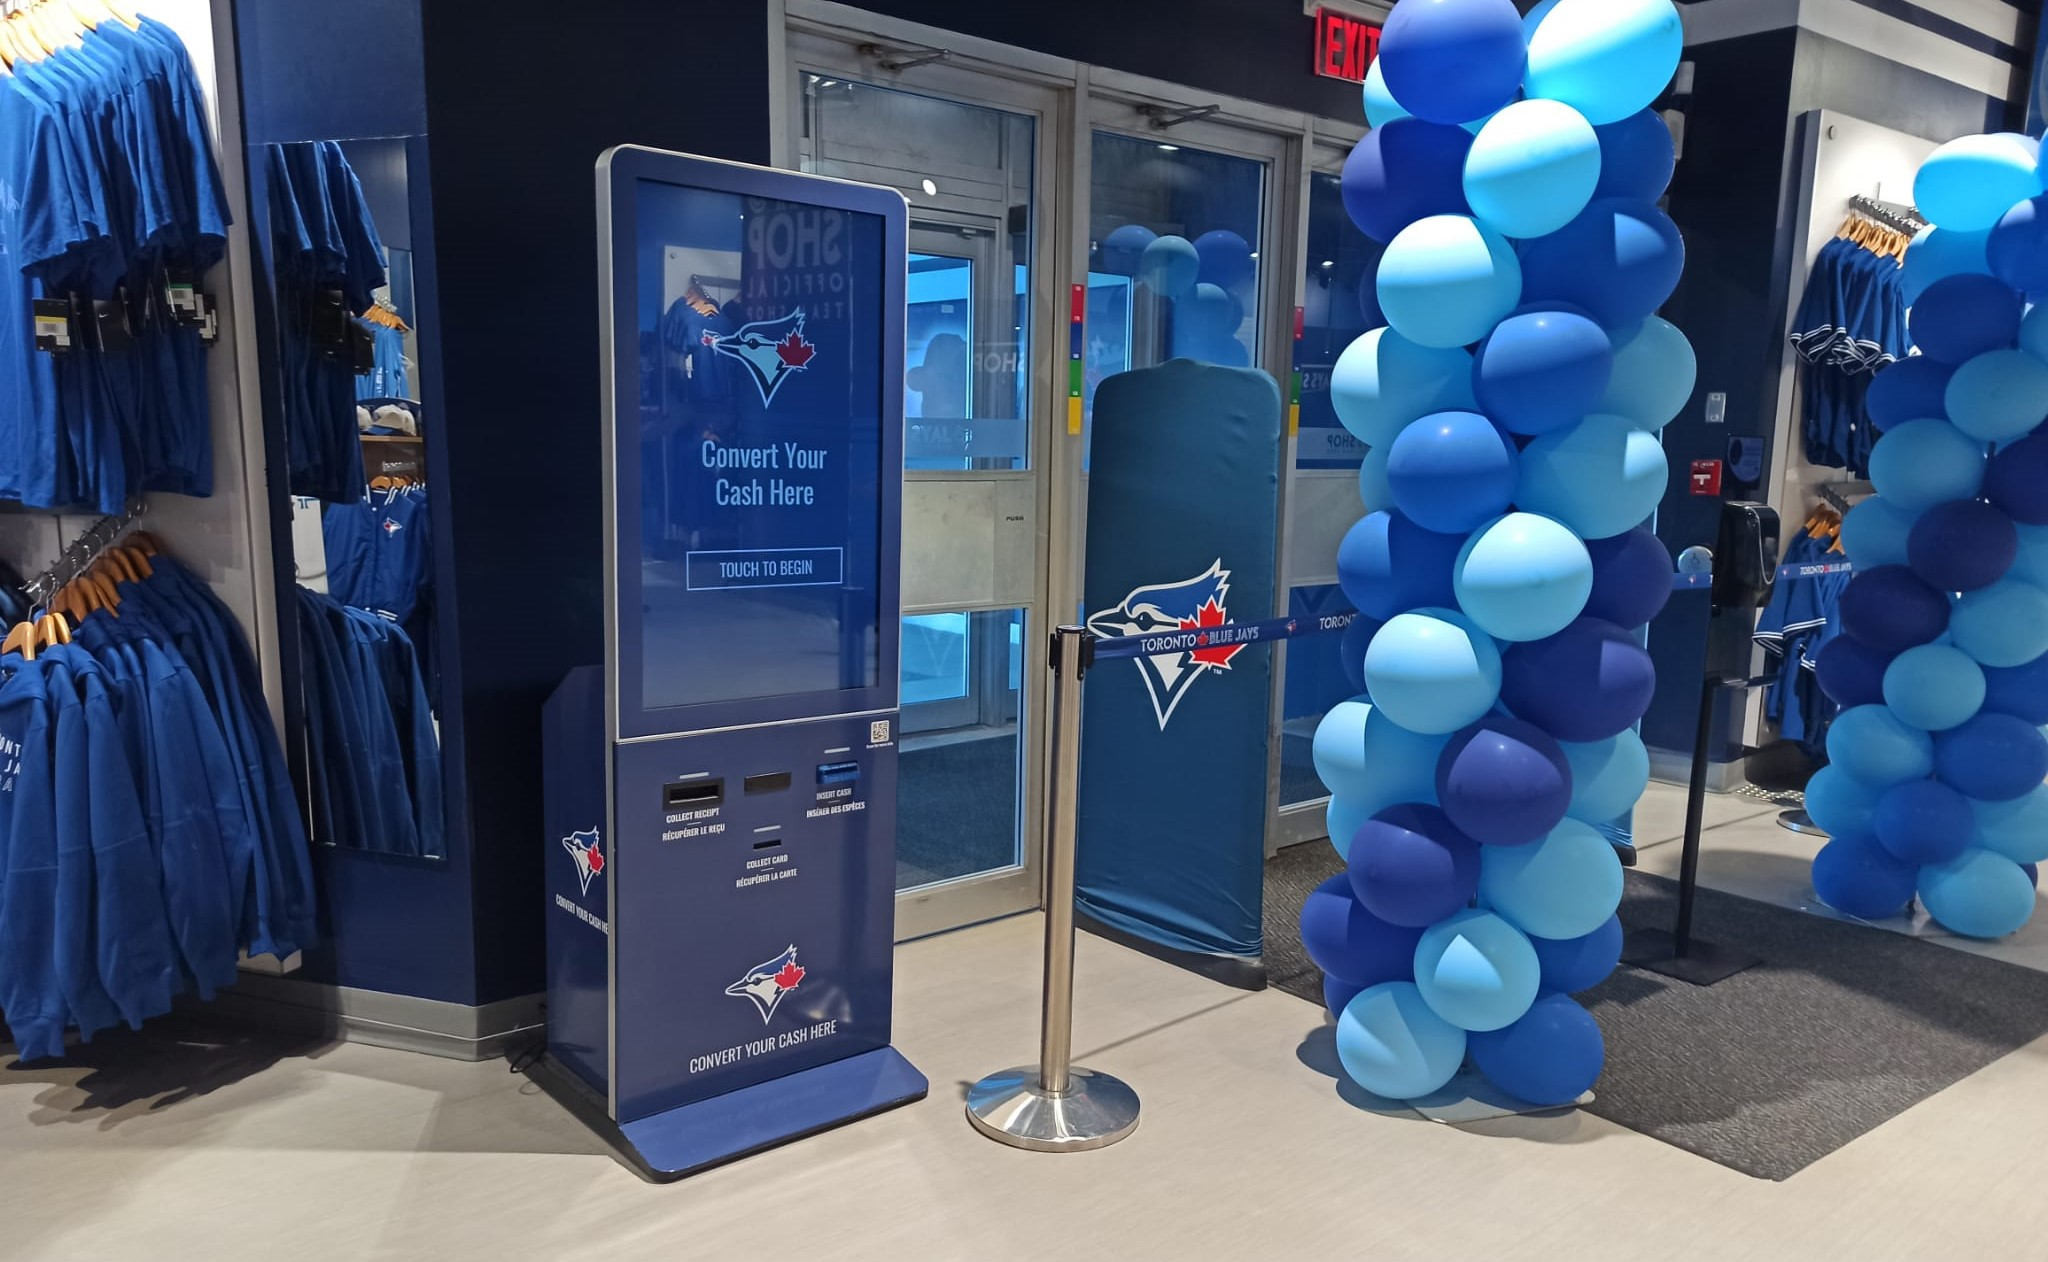 XTM Reverse ATM at Rogers Centre Toronto by Azimut